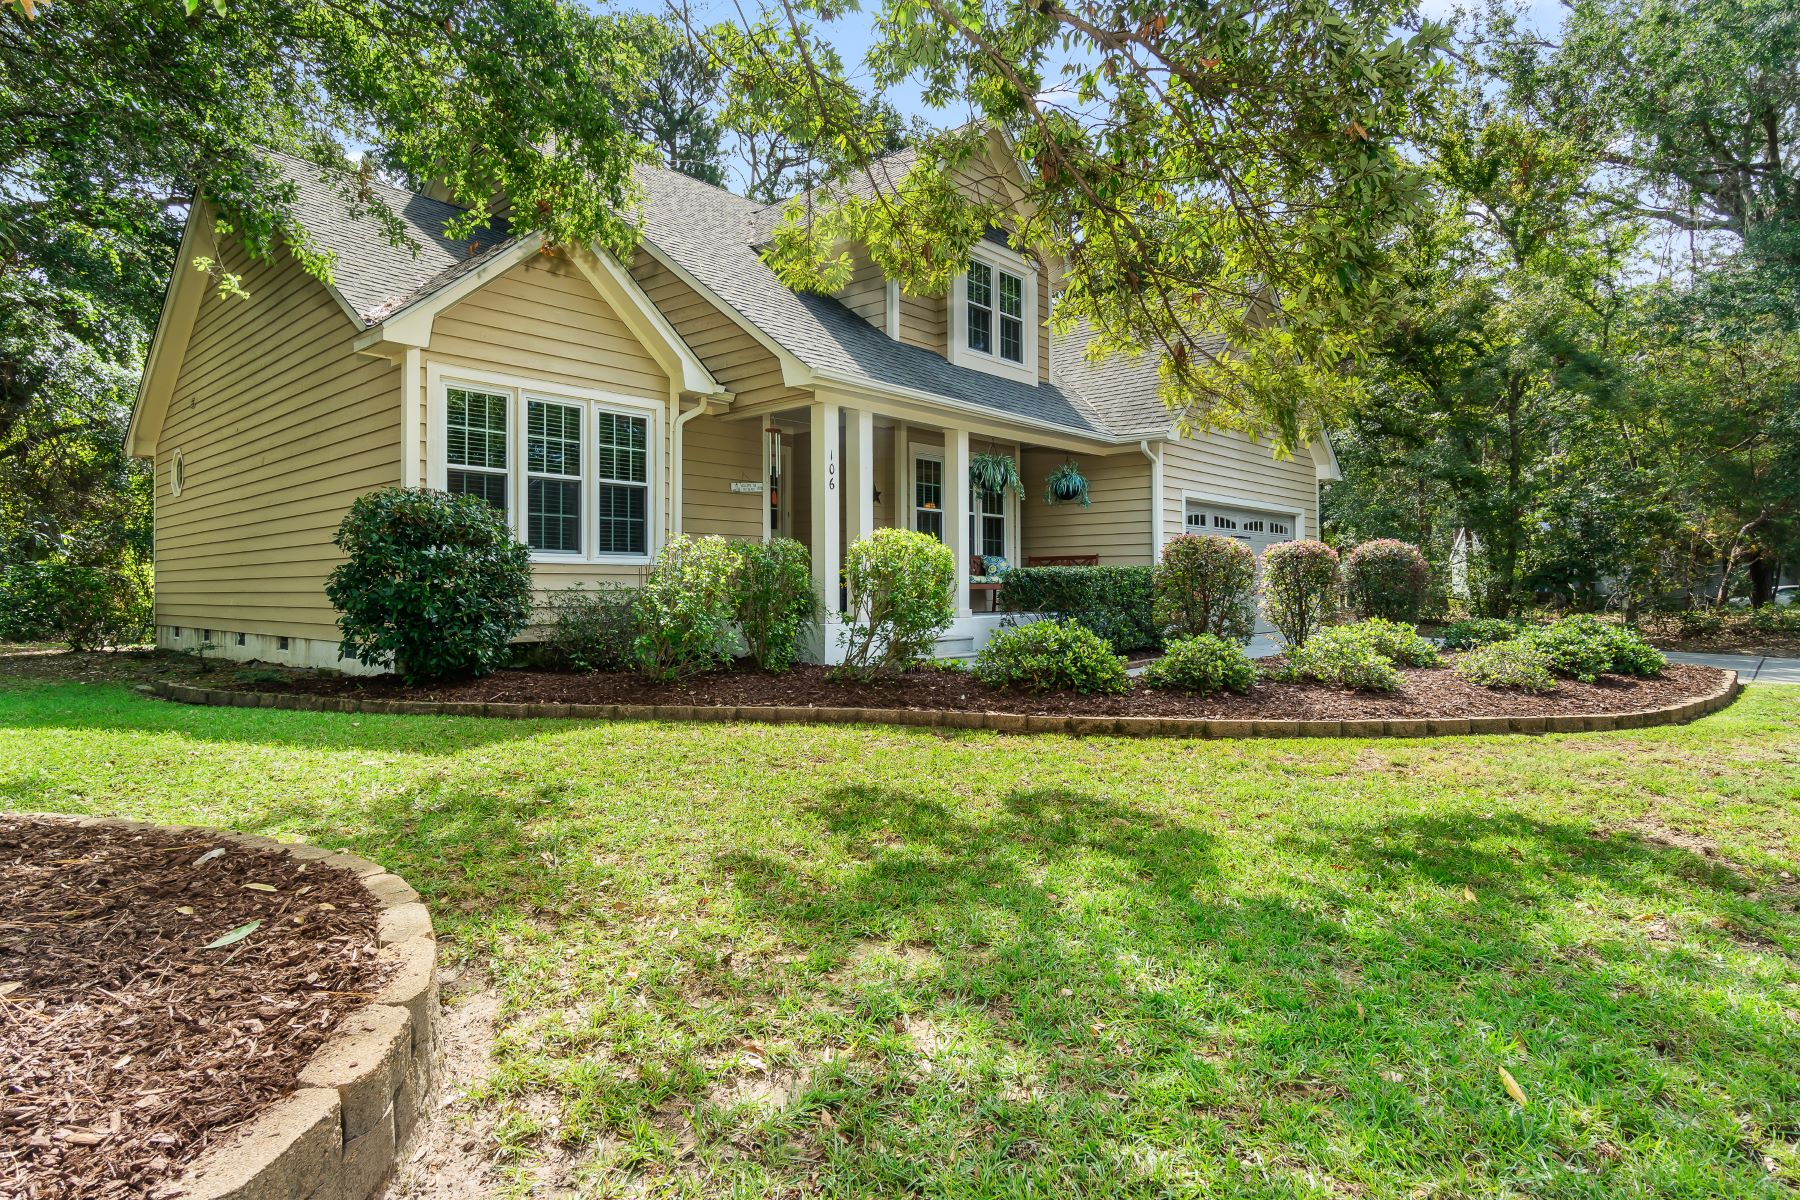 Single Family Homes for Sale at Exceptional Home in Pine Knoll Shores 106 Fern Ct Pine Knoll Shores, North Carolina 28512 United States